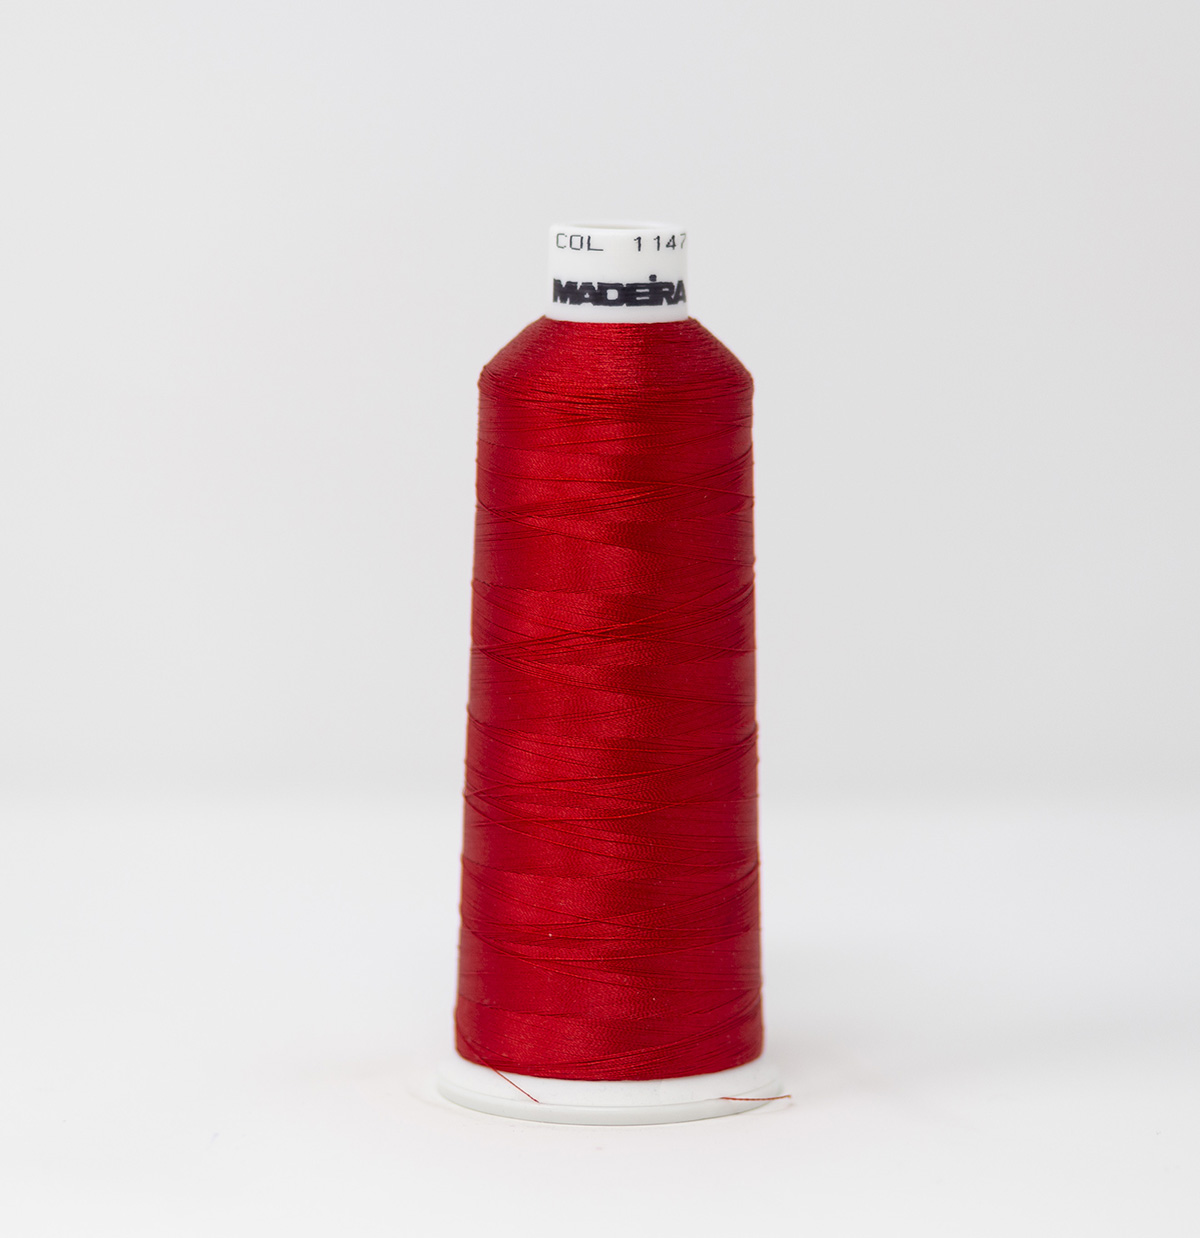 1147 Madeira Rayon Embroidery Thread 5500yd Cone RED Color